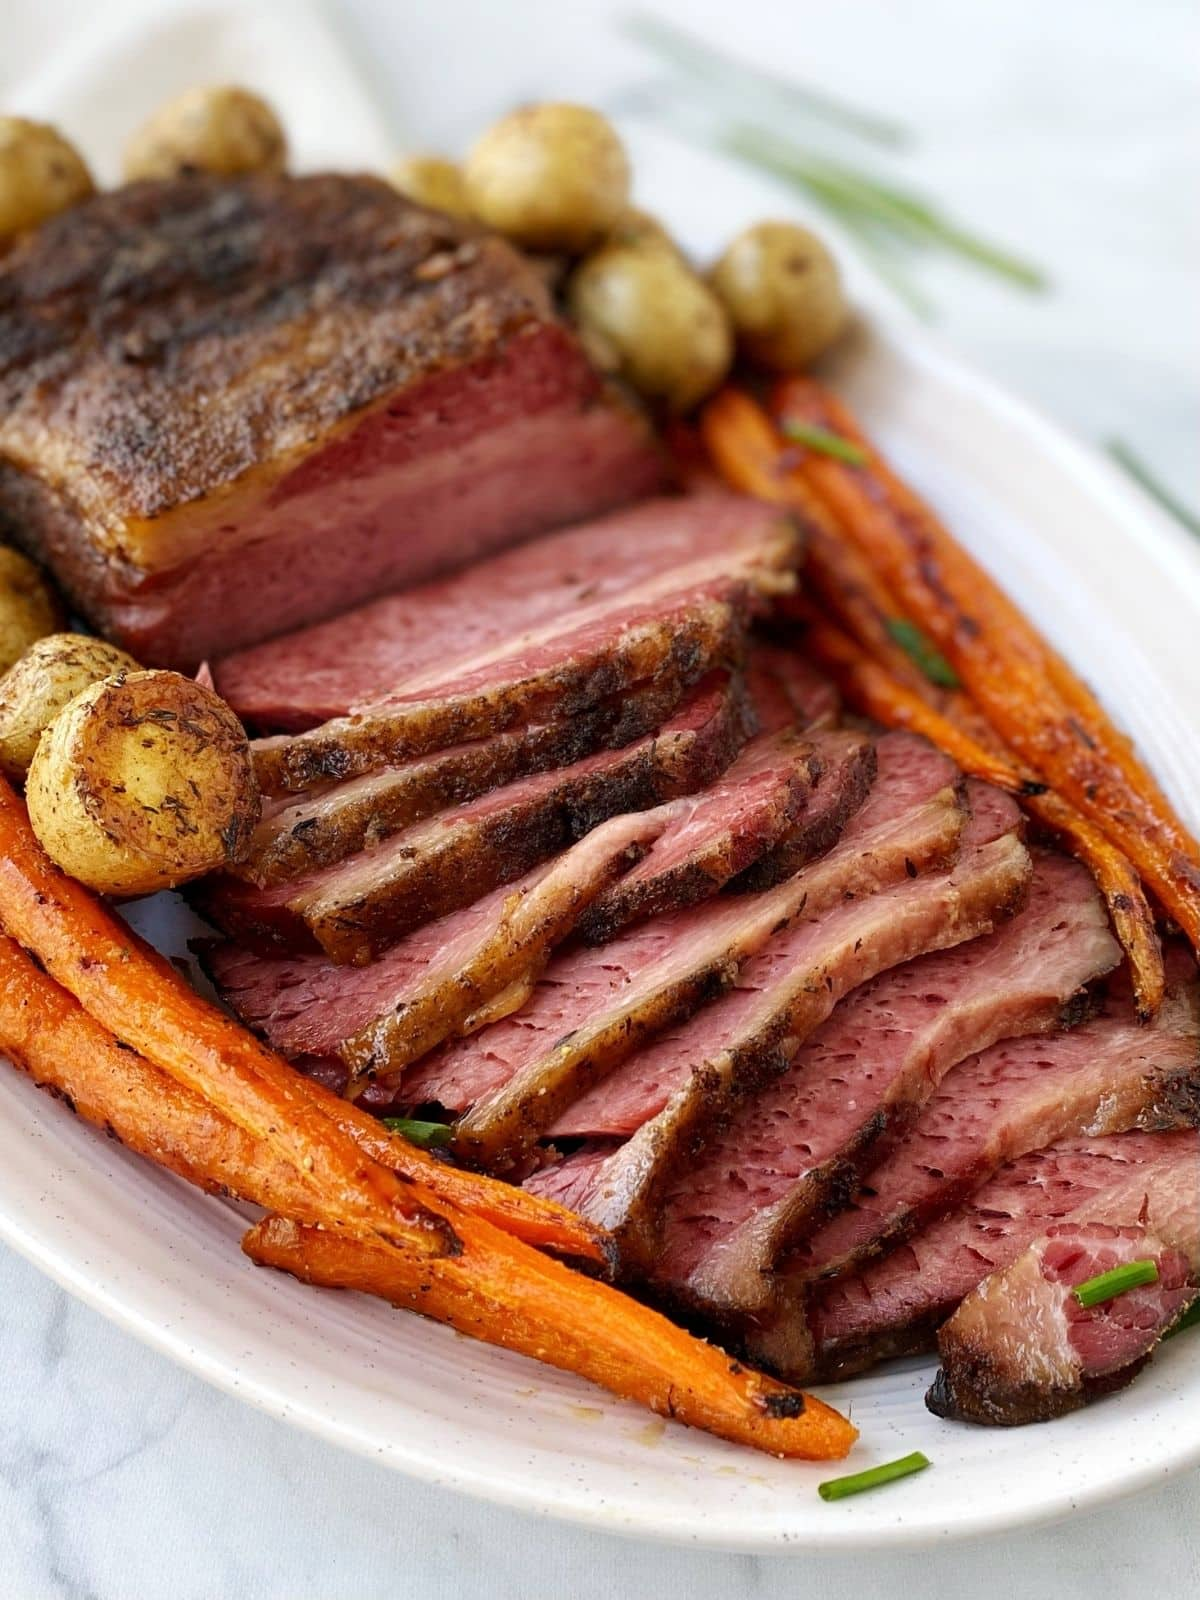 corned beef on a platter with potatoes and carrots